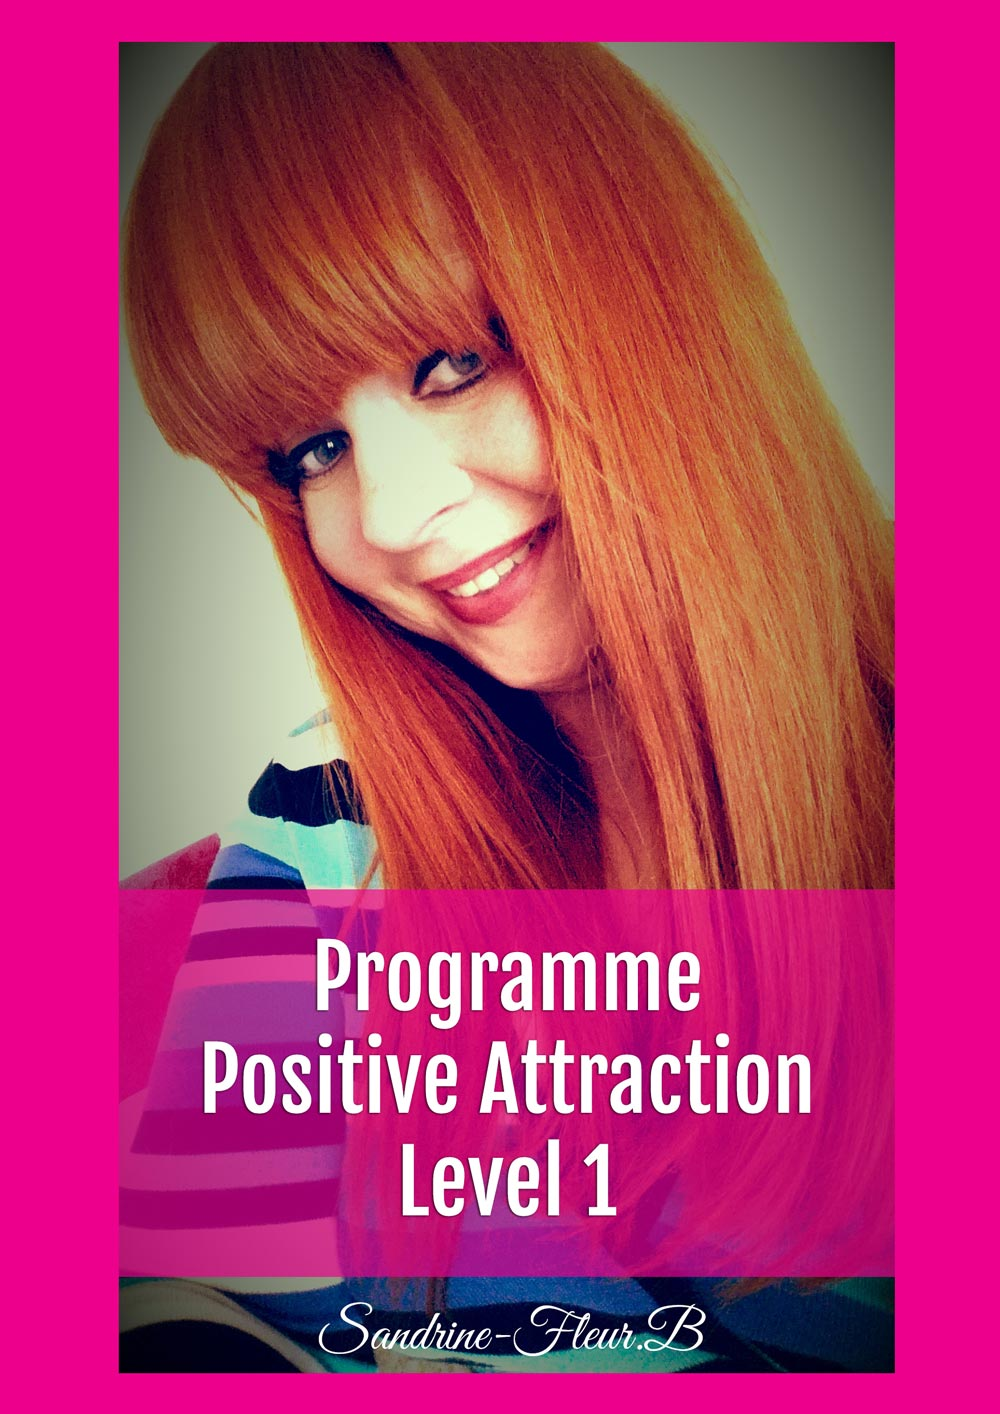 Positive attraction level 1 1